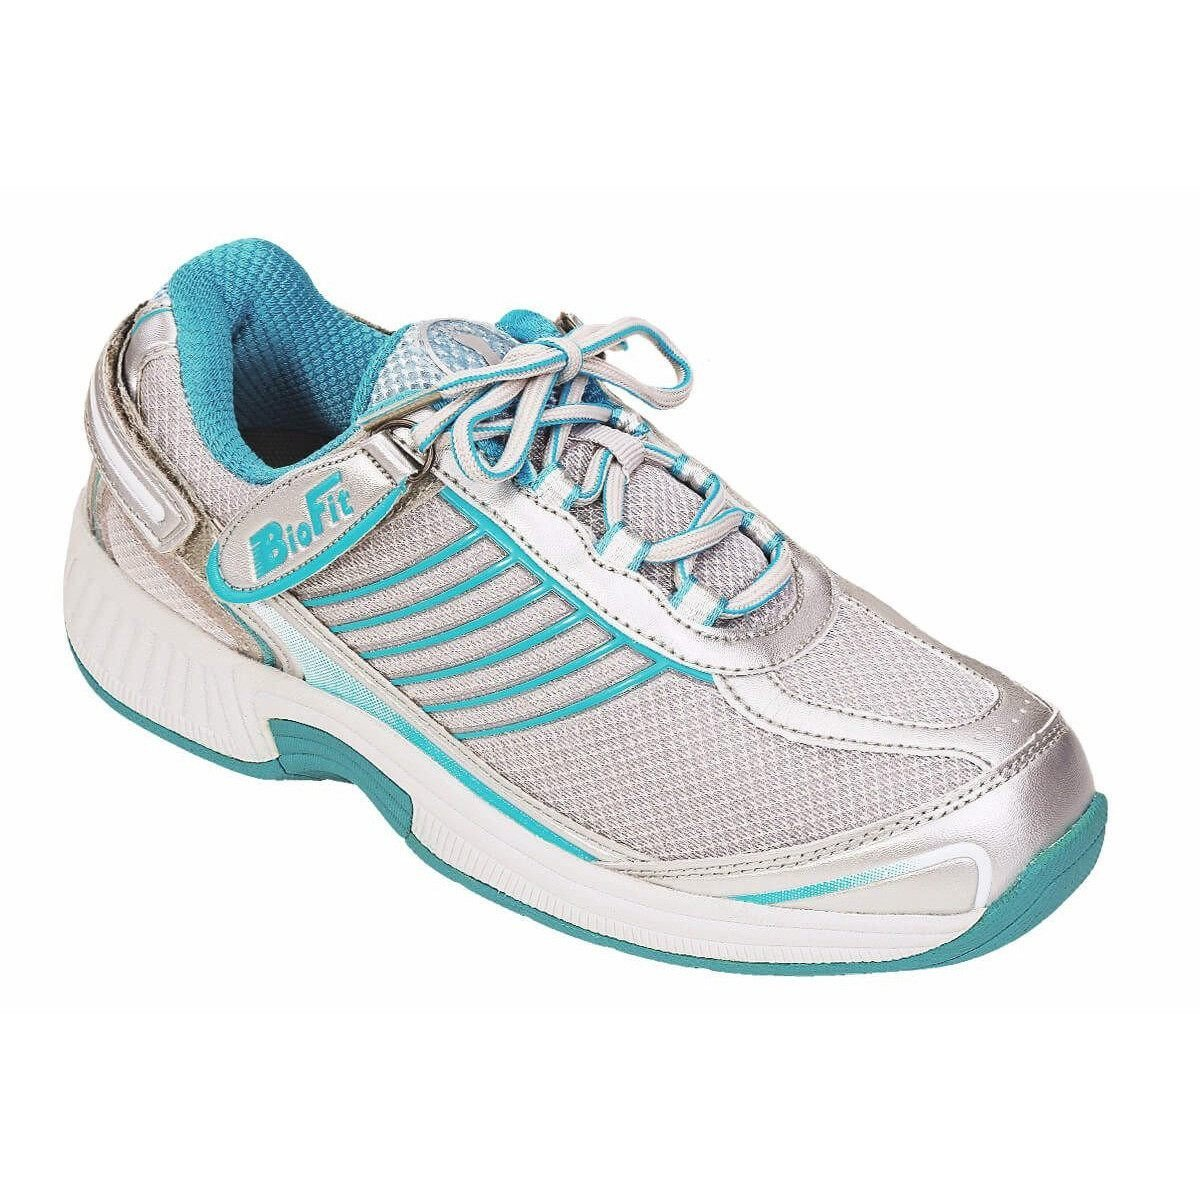 Orthofeet Most Comfortable Plantar Fasciitis Verve Orthopedic Diabetic Athletic Shoes for Women B00VQJEQAO 12 XW US|Turquoise